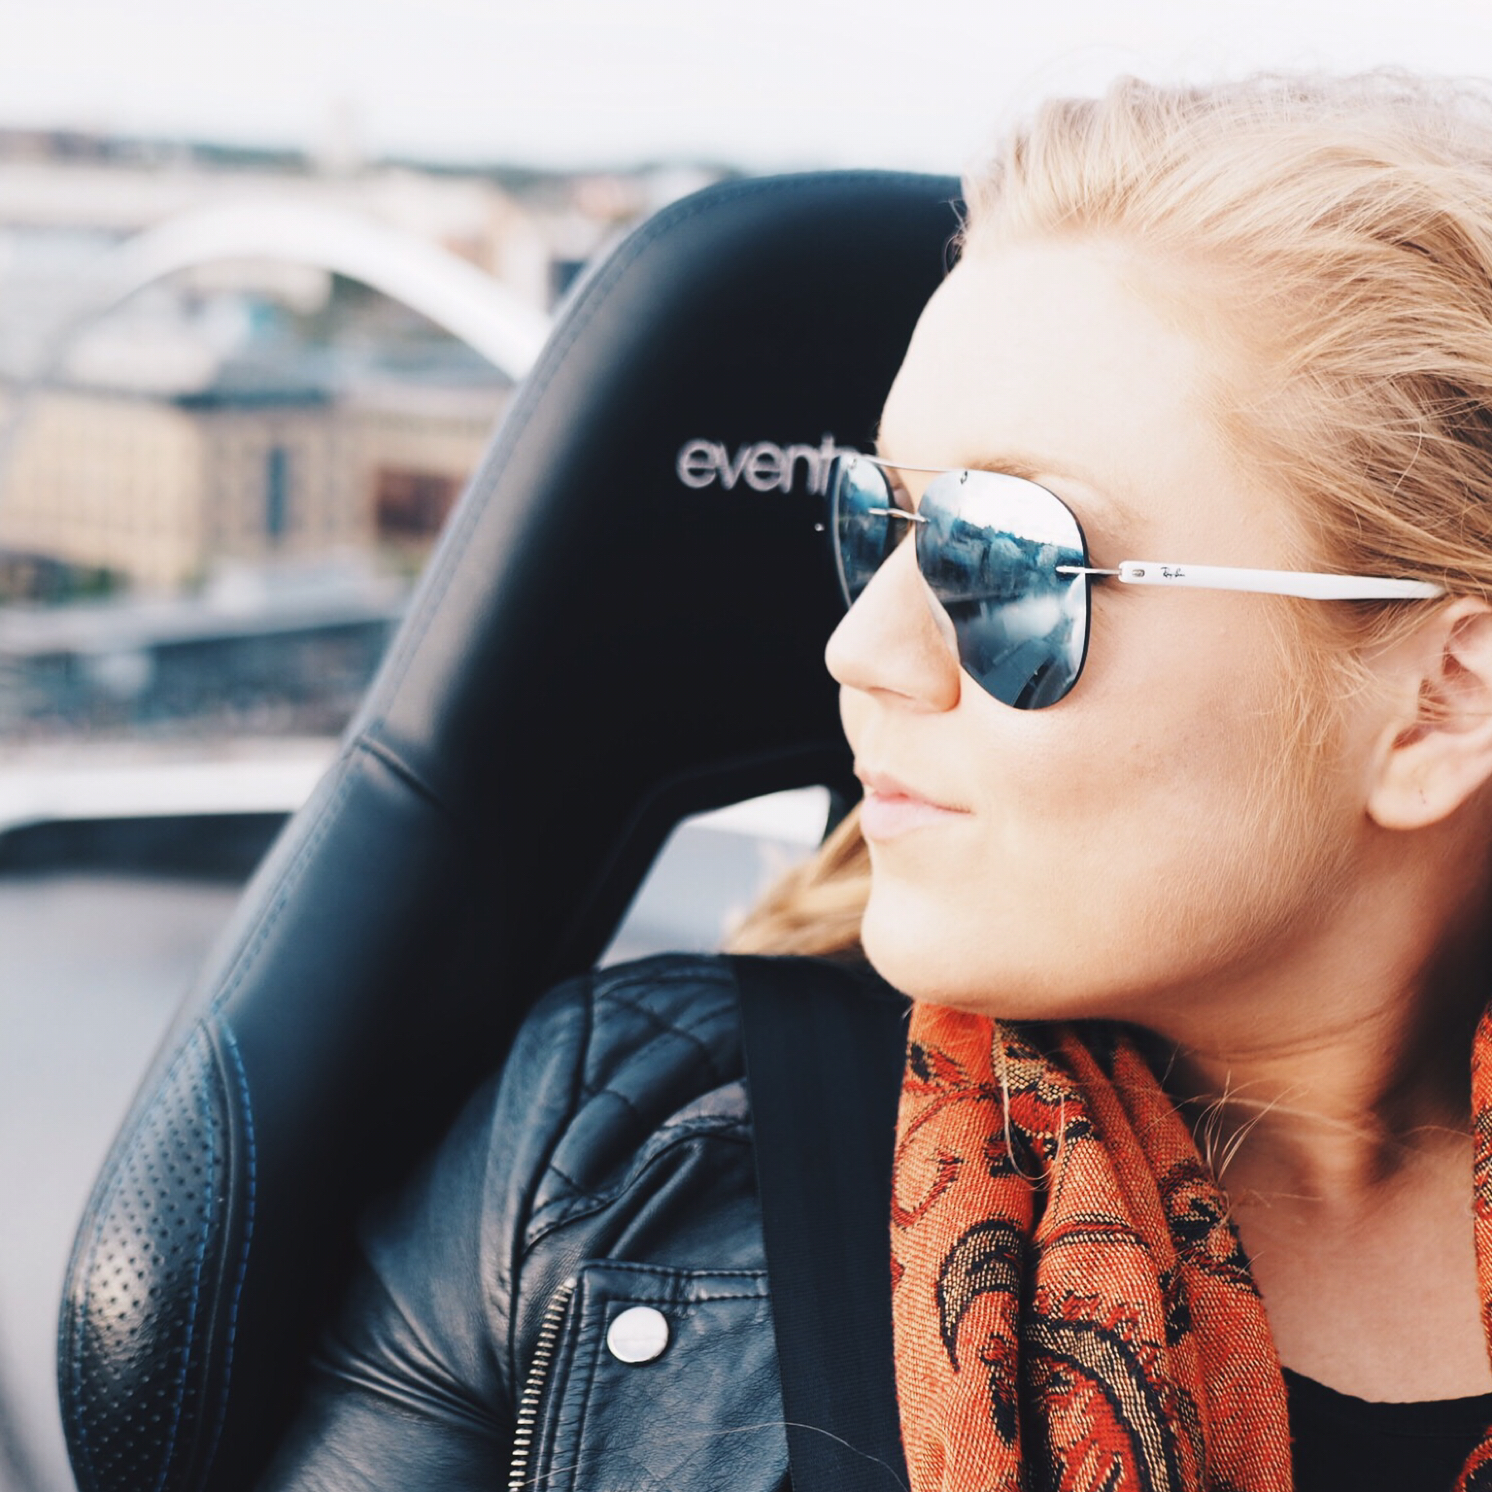 events-in-the-sky-sunglasses-shop-rayban-aviators-elle-blonde-luxury-lifestyle-destination-blog